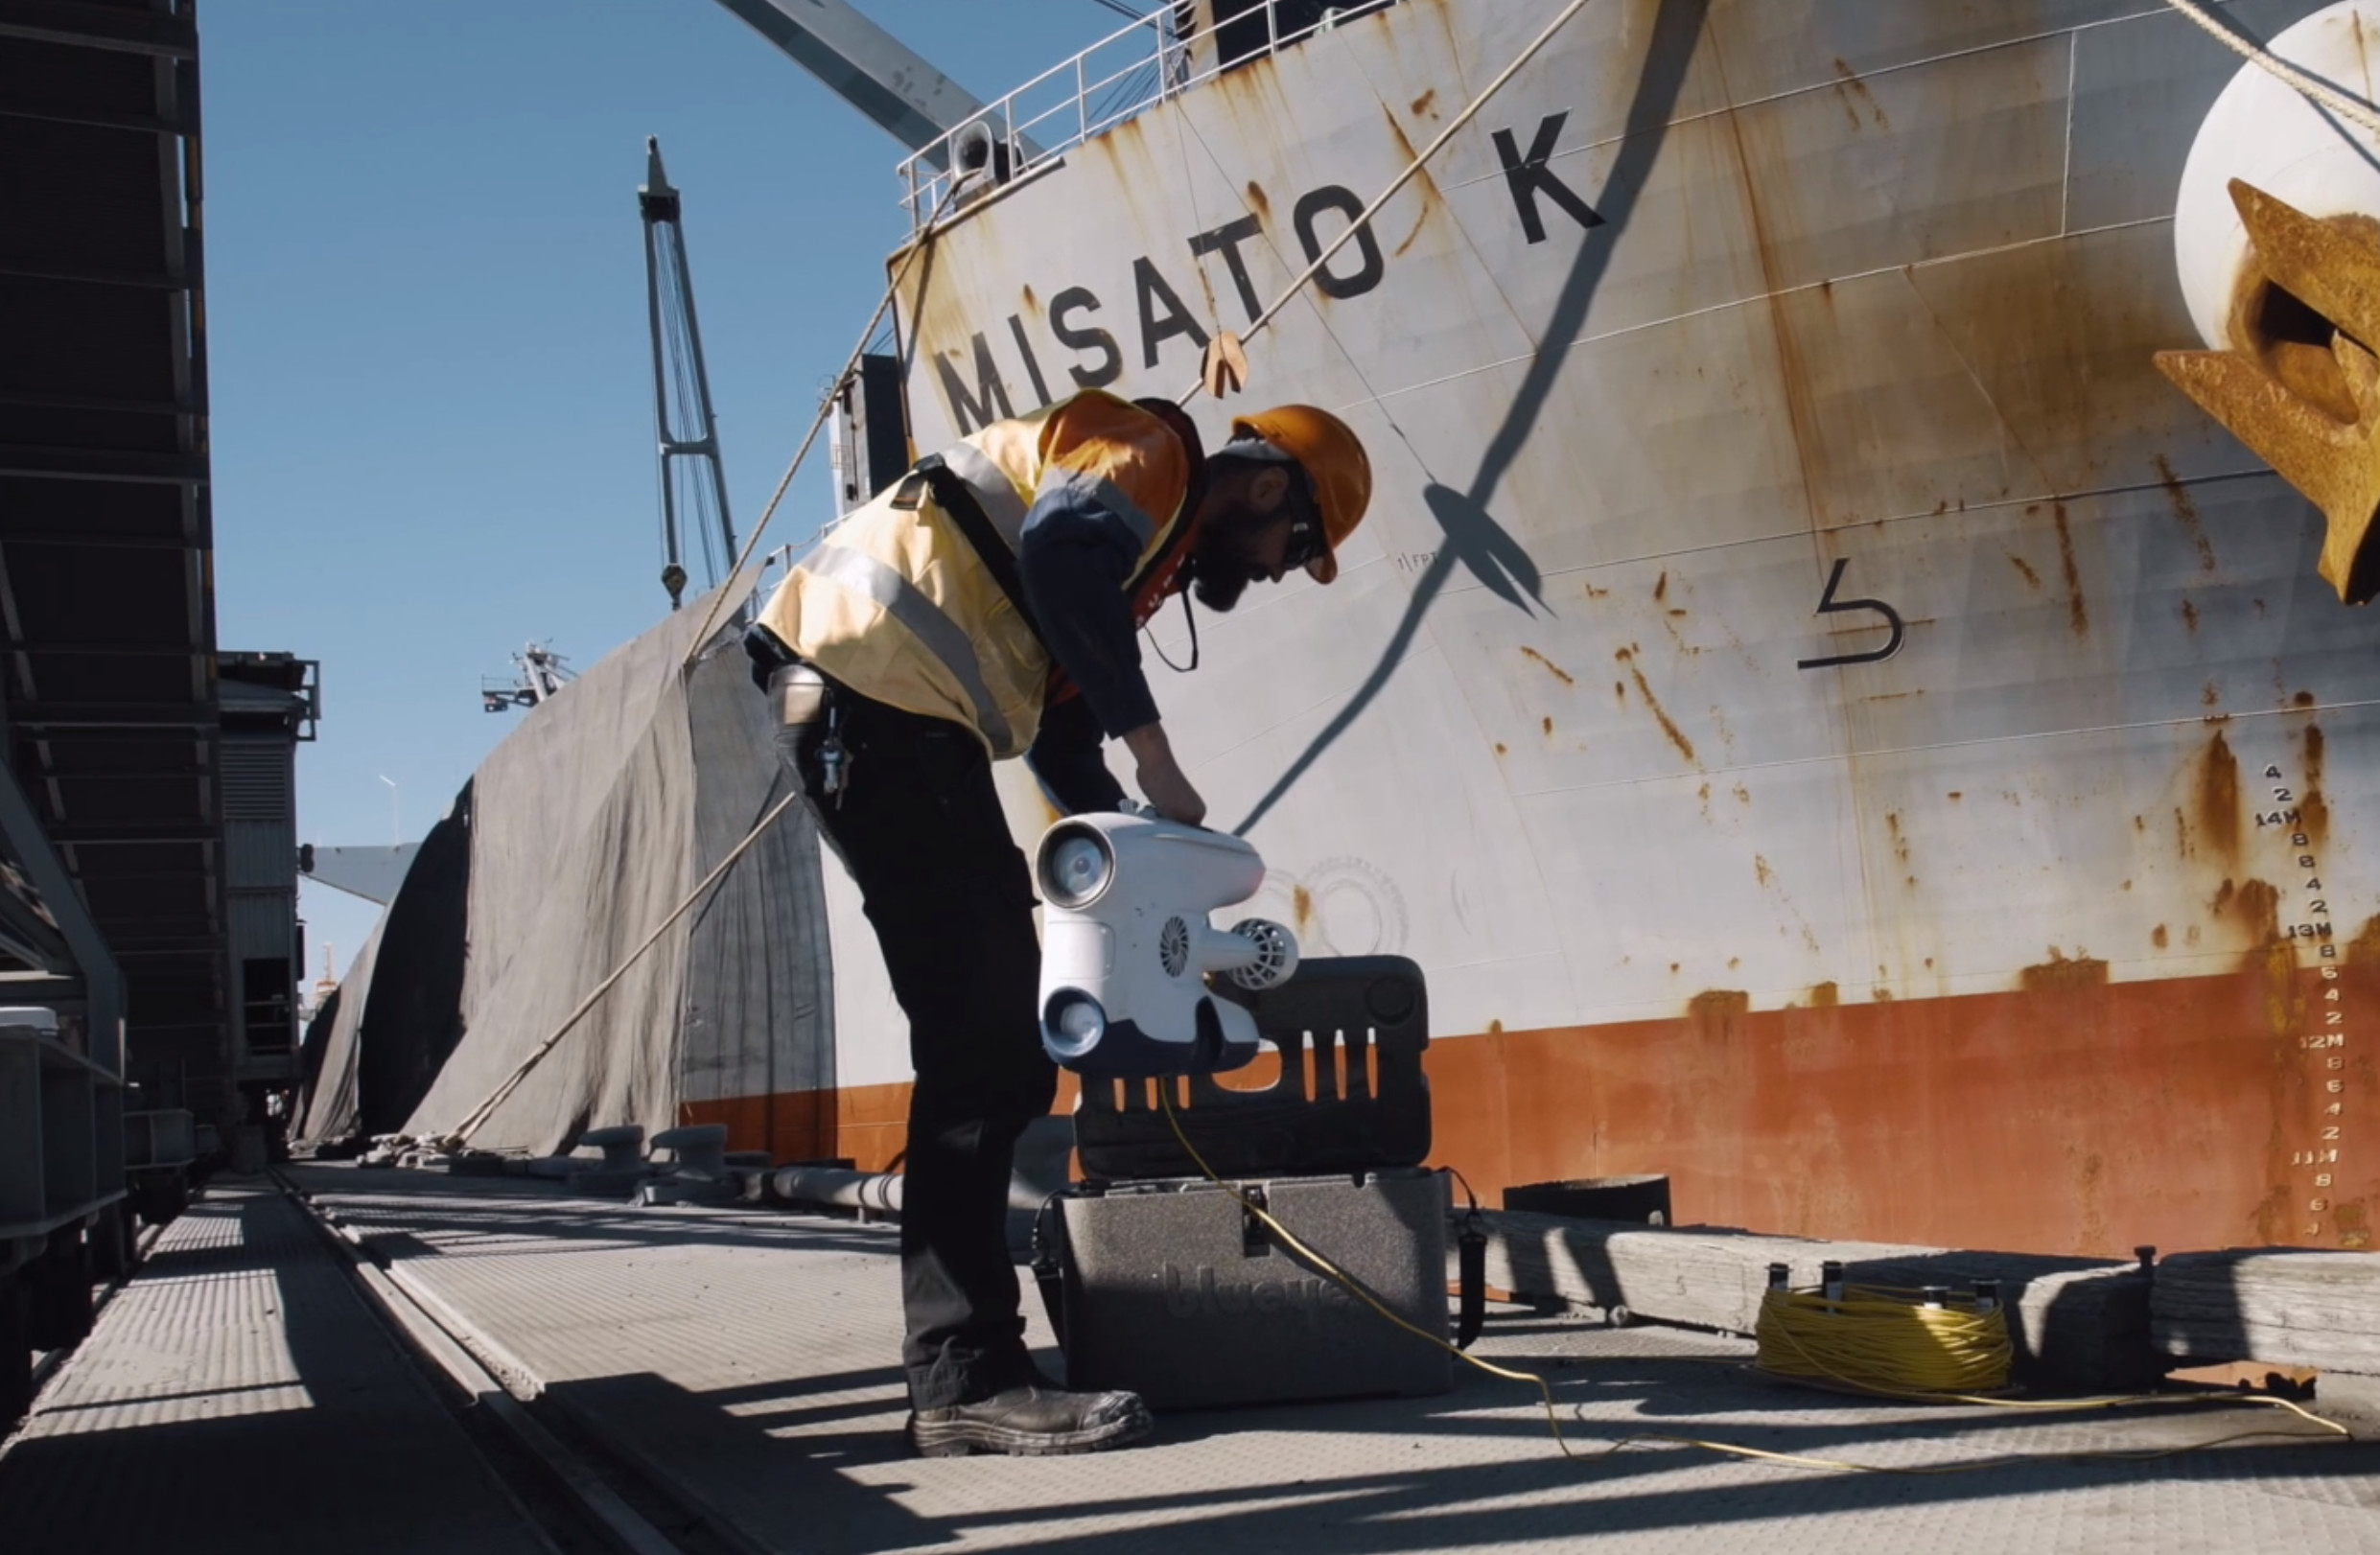 Inchcape Shipping Services inspecting a vessel